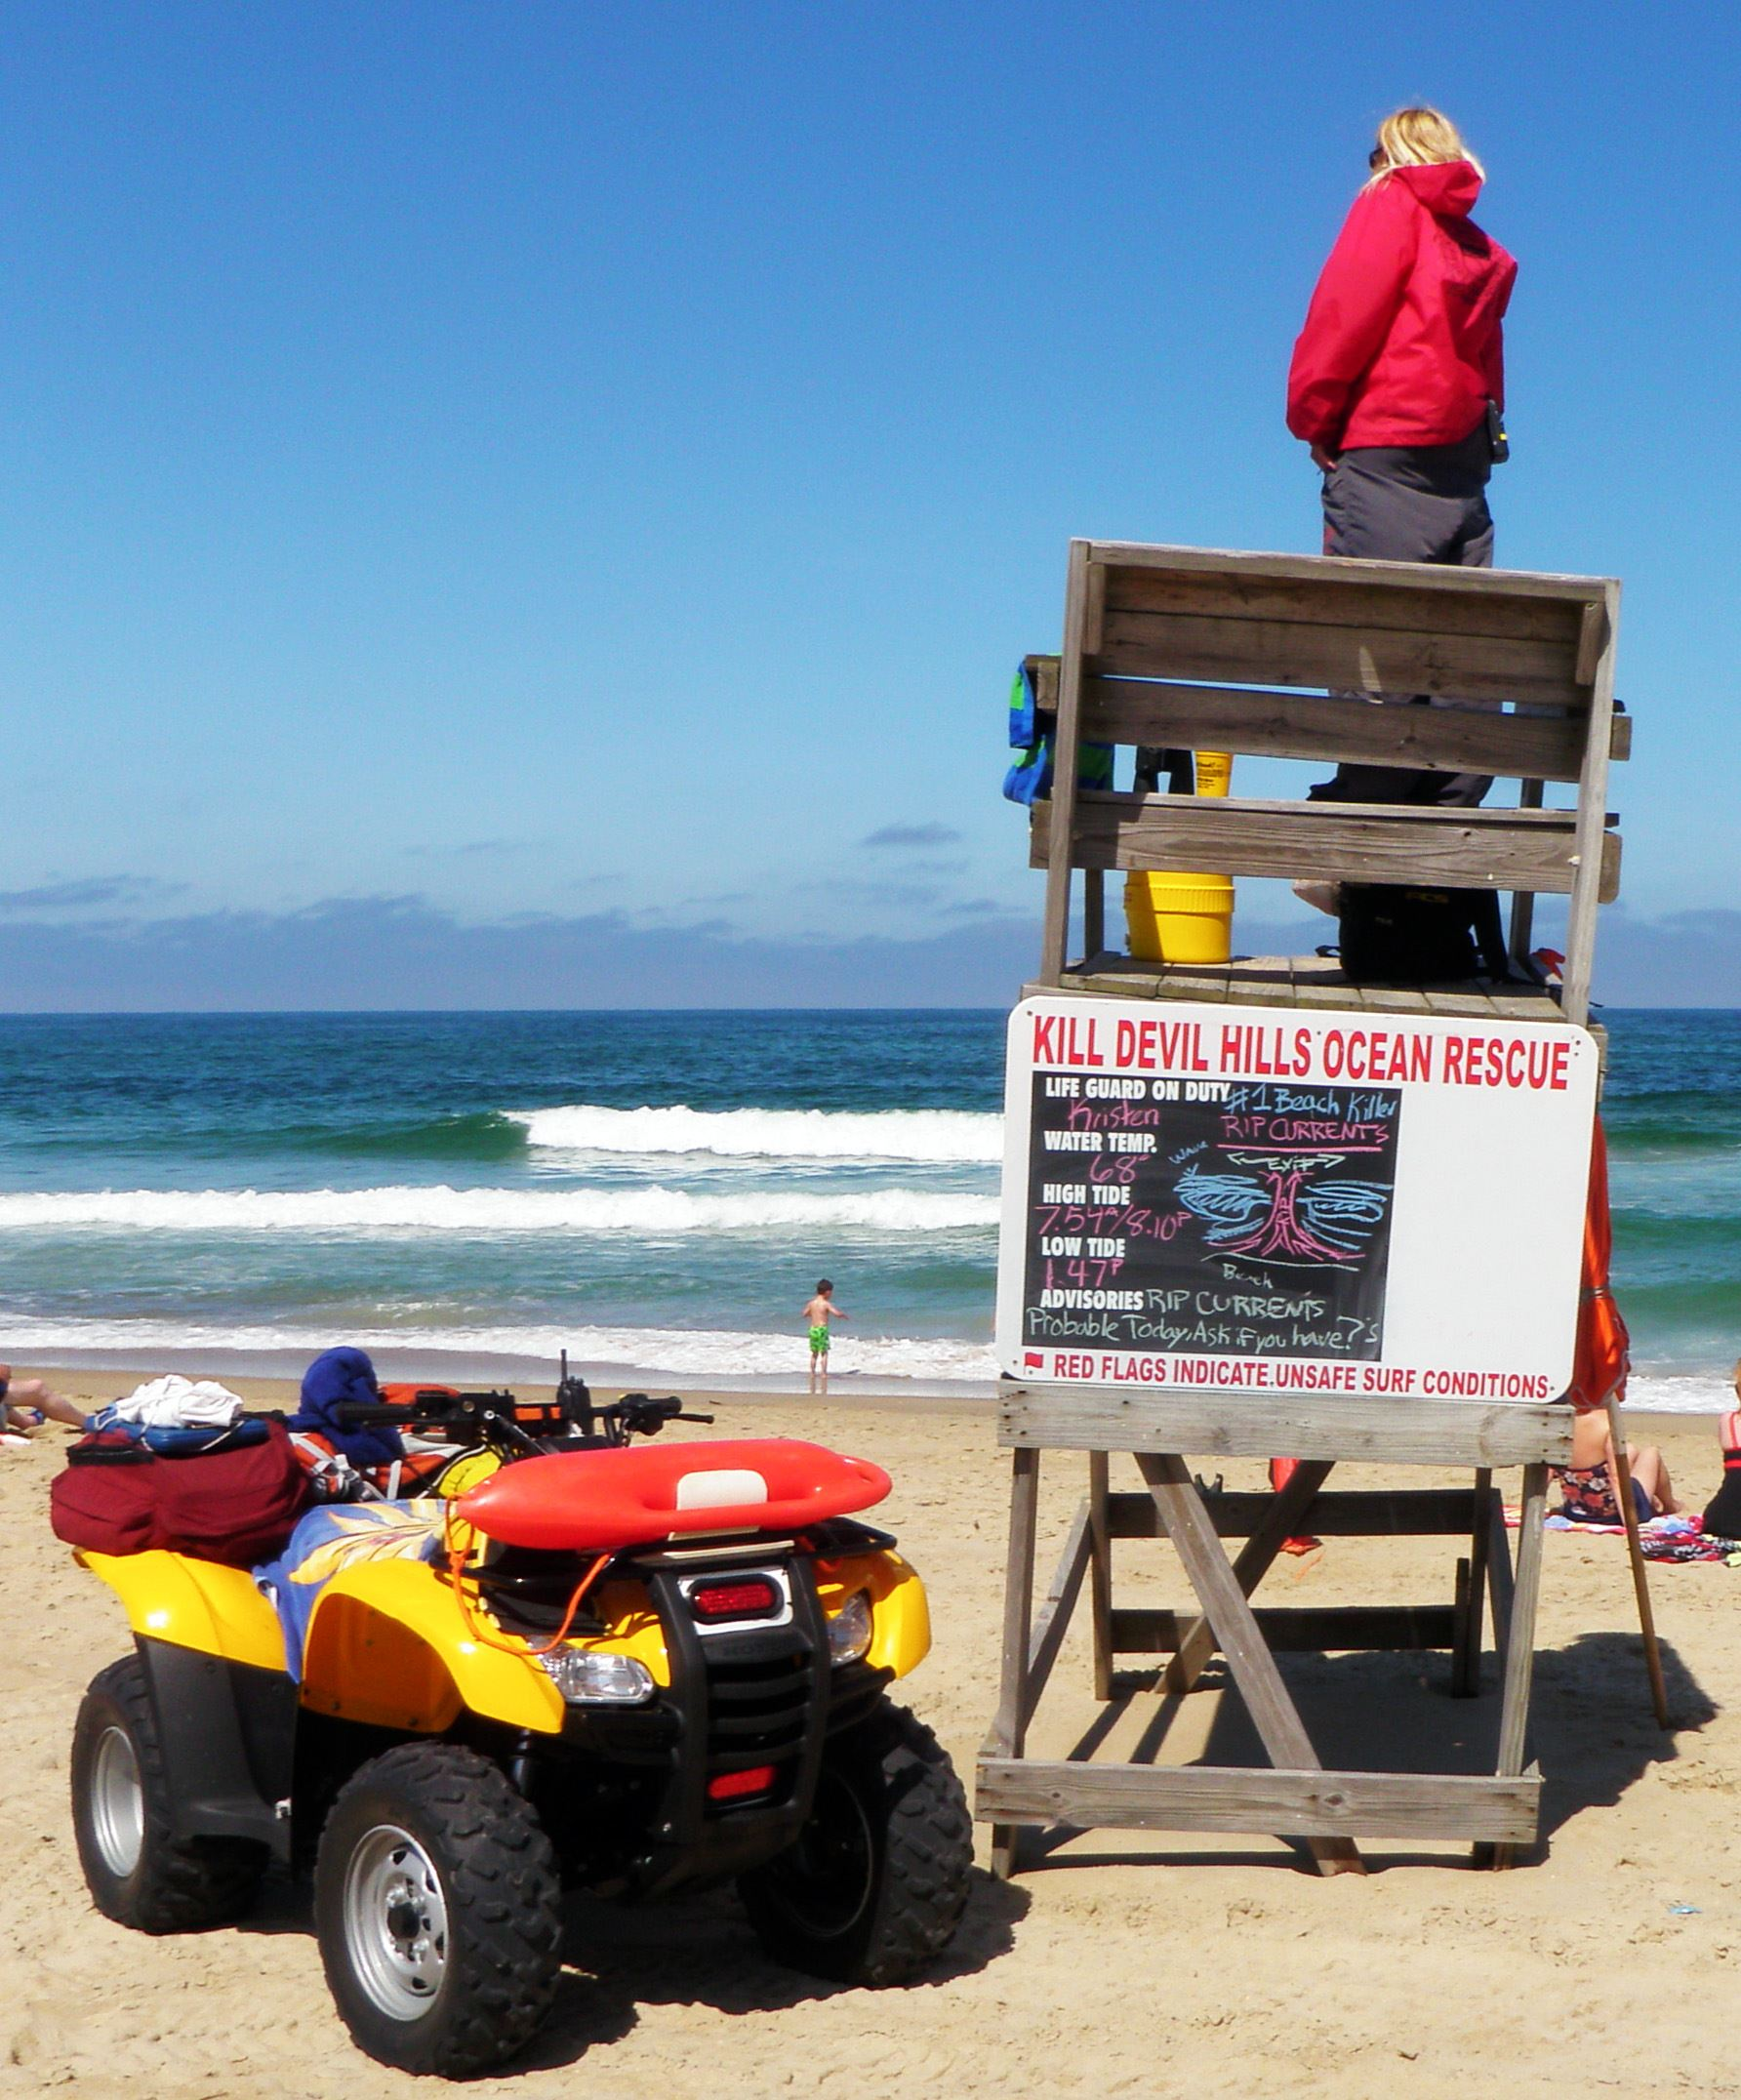 KDH Ocean Rescue Lifeguard on stand